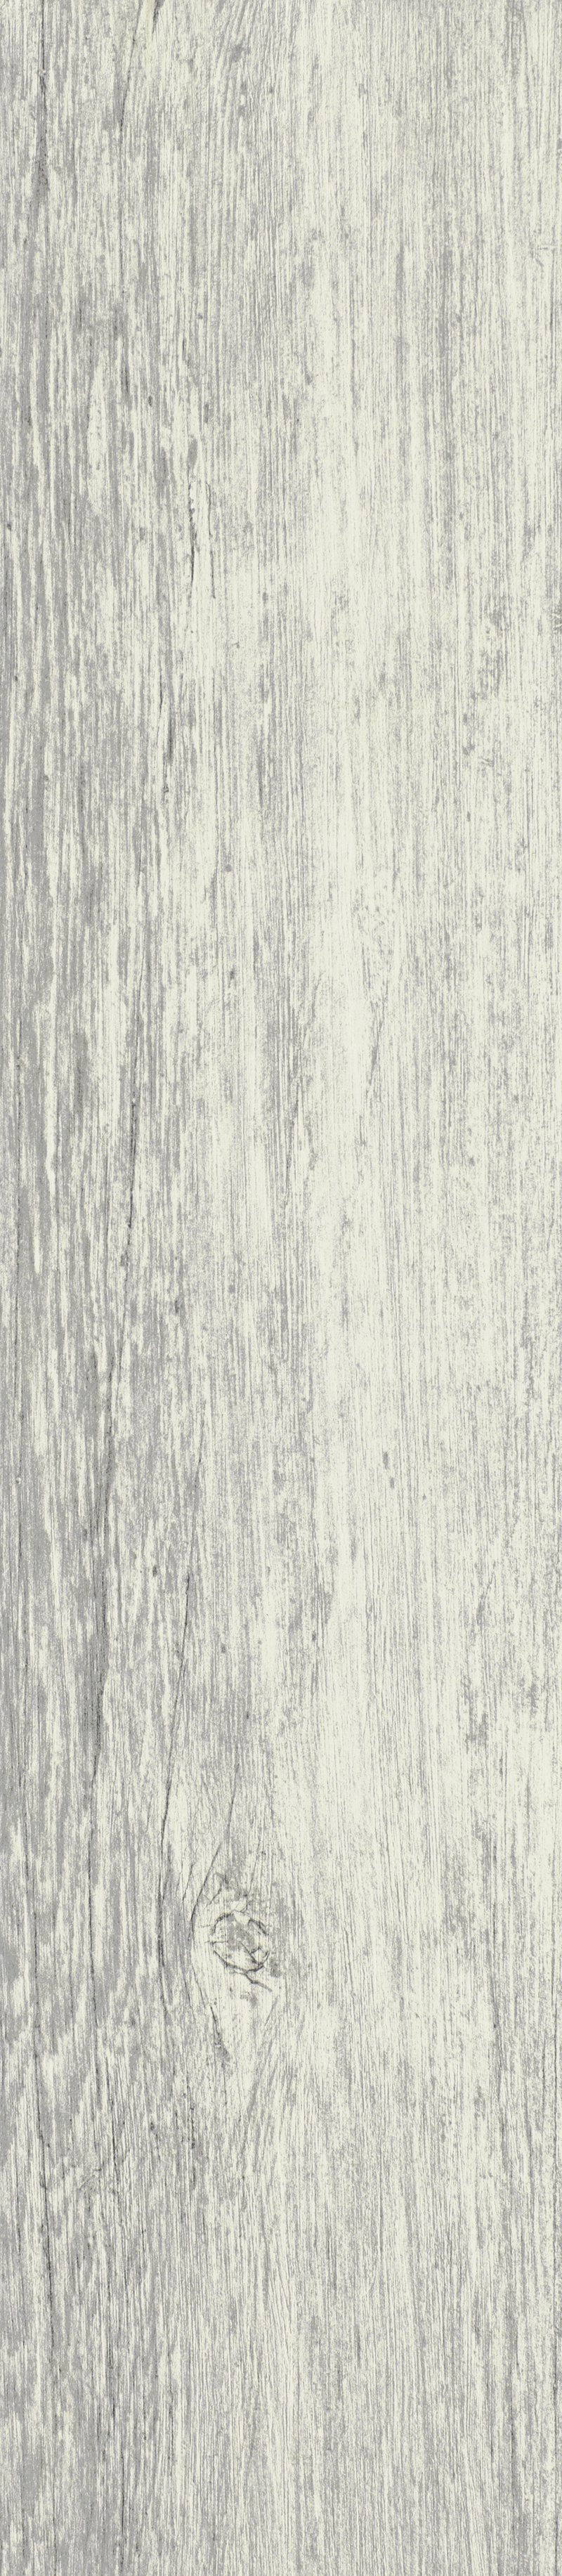 Forester grey wood effect porcelain tile 215x985cm the tile bin matt porcelain wood effect floor tile 5 tiles per box dailygadgetfo Gallery